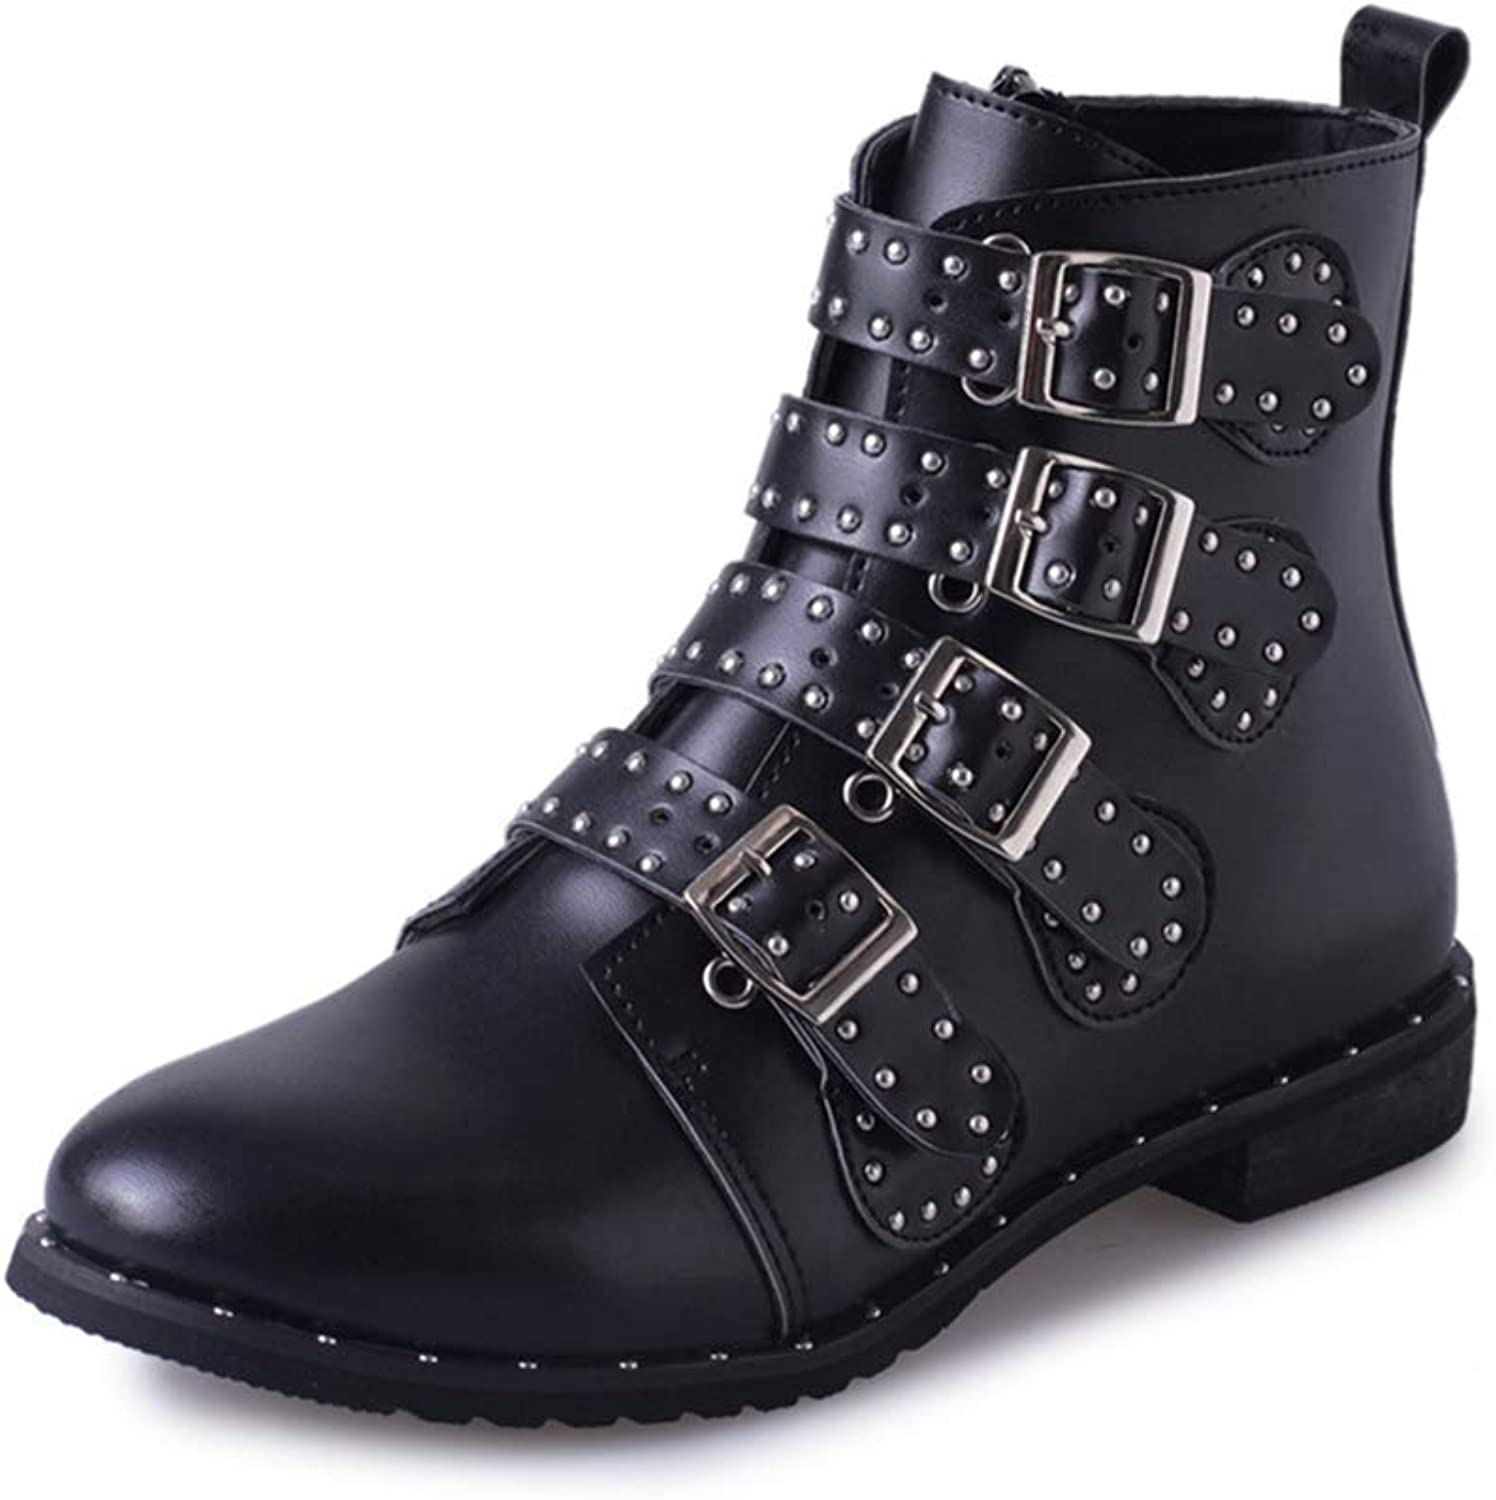 Fashion shoesbox Women's Flat Western Buckle Strappy Ankle Boots Rivets Pointed Toe Zipper Booties Chelsea Short Boots